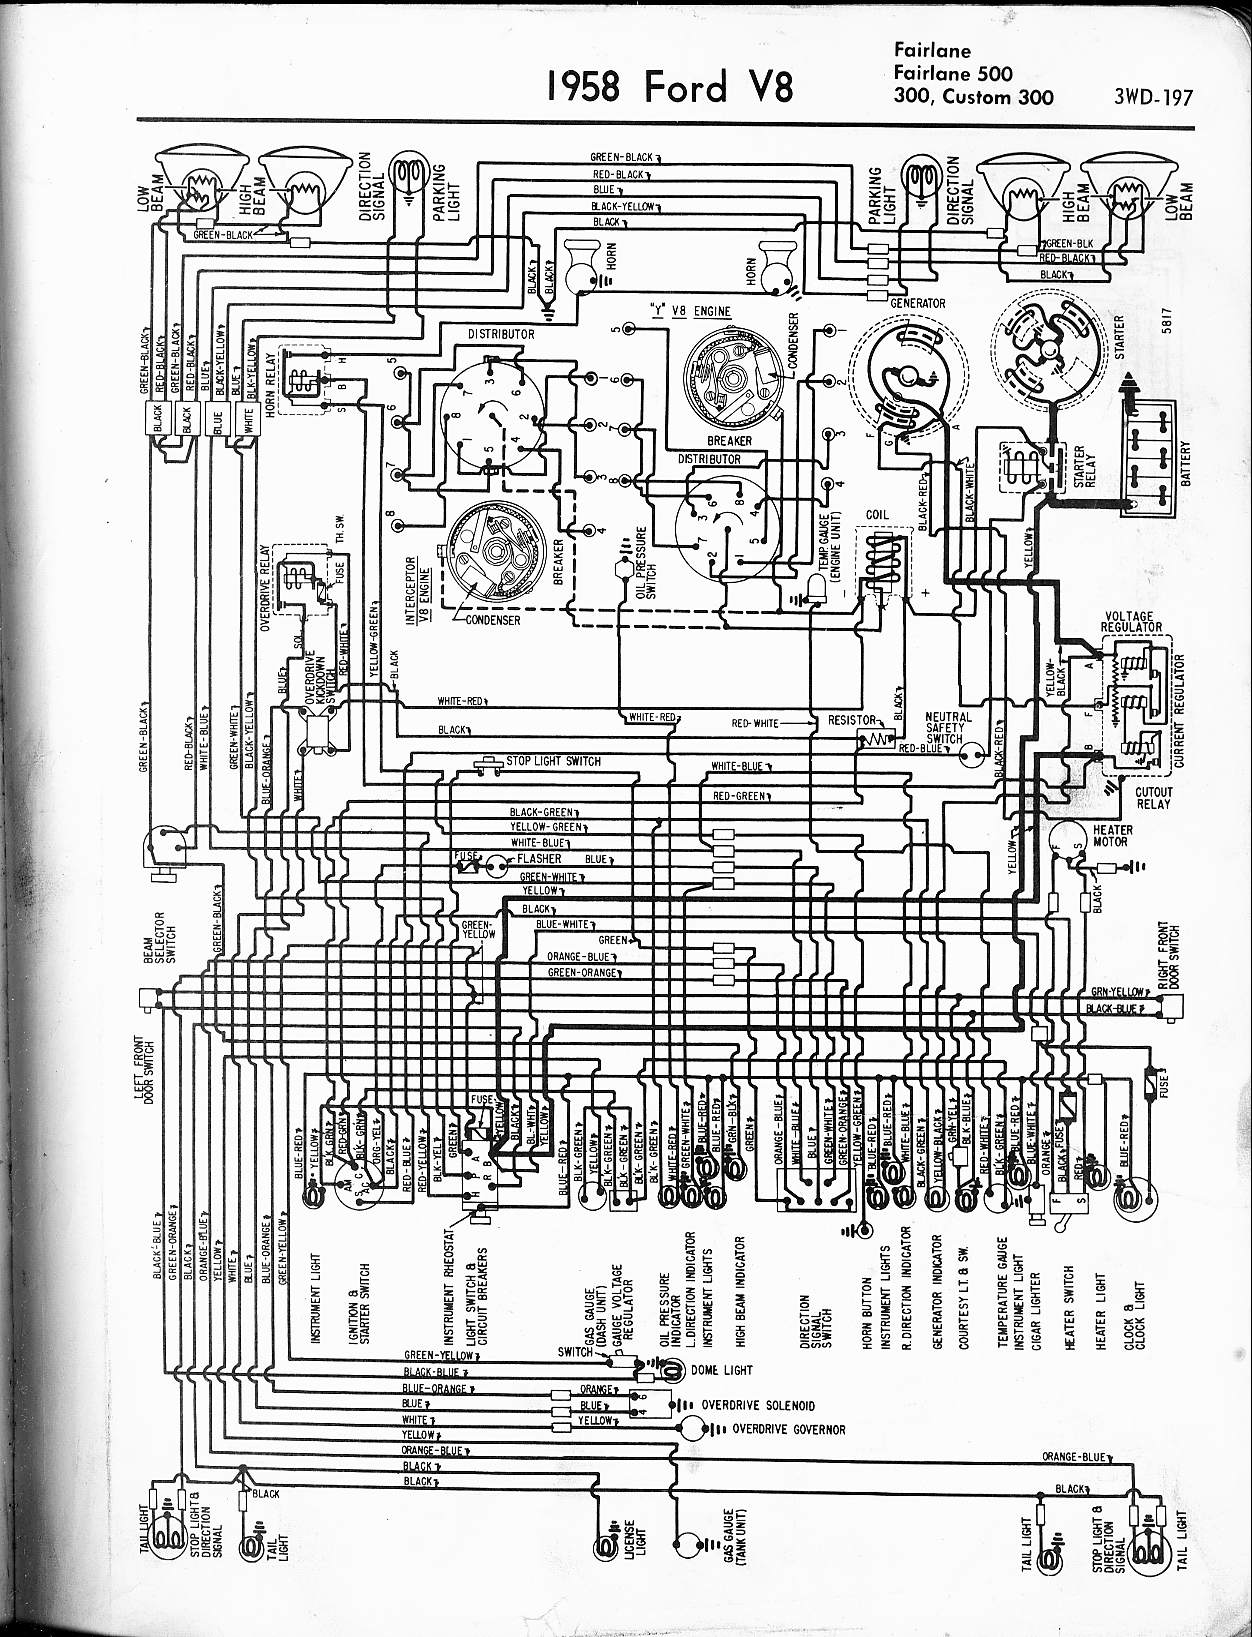 MWire5765 197 57 65 ford wiring diagrams ford wiring schematics at virtualis.co